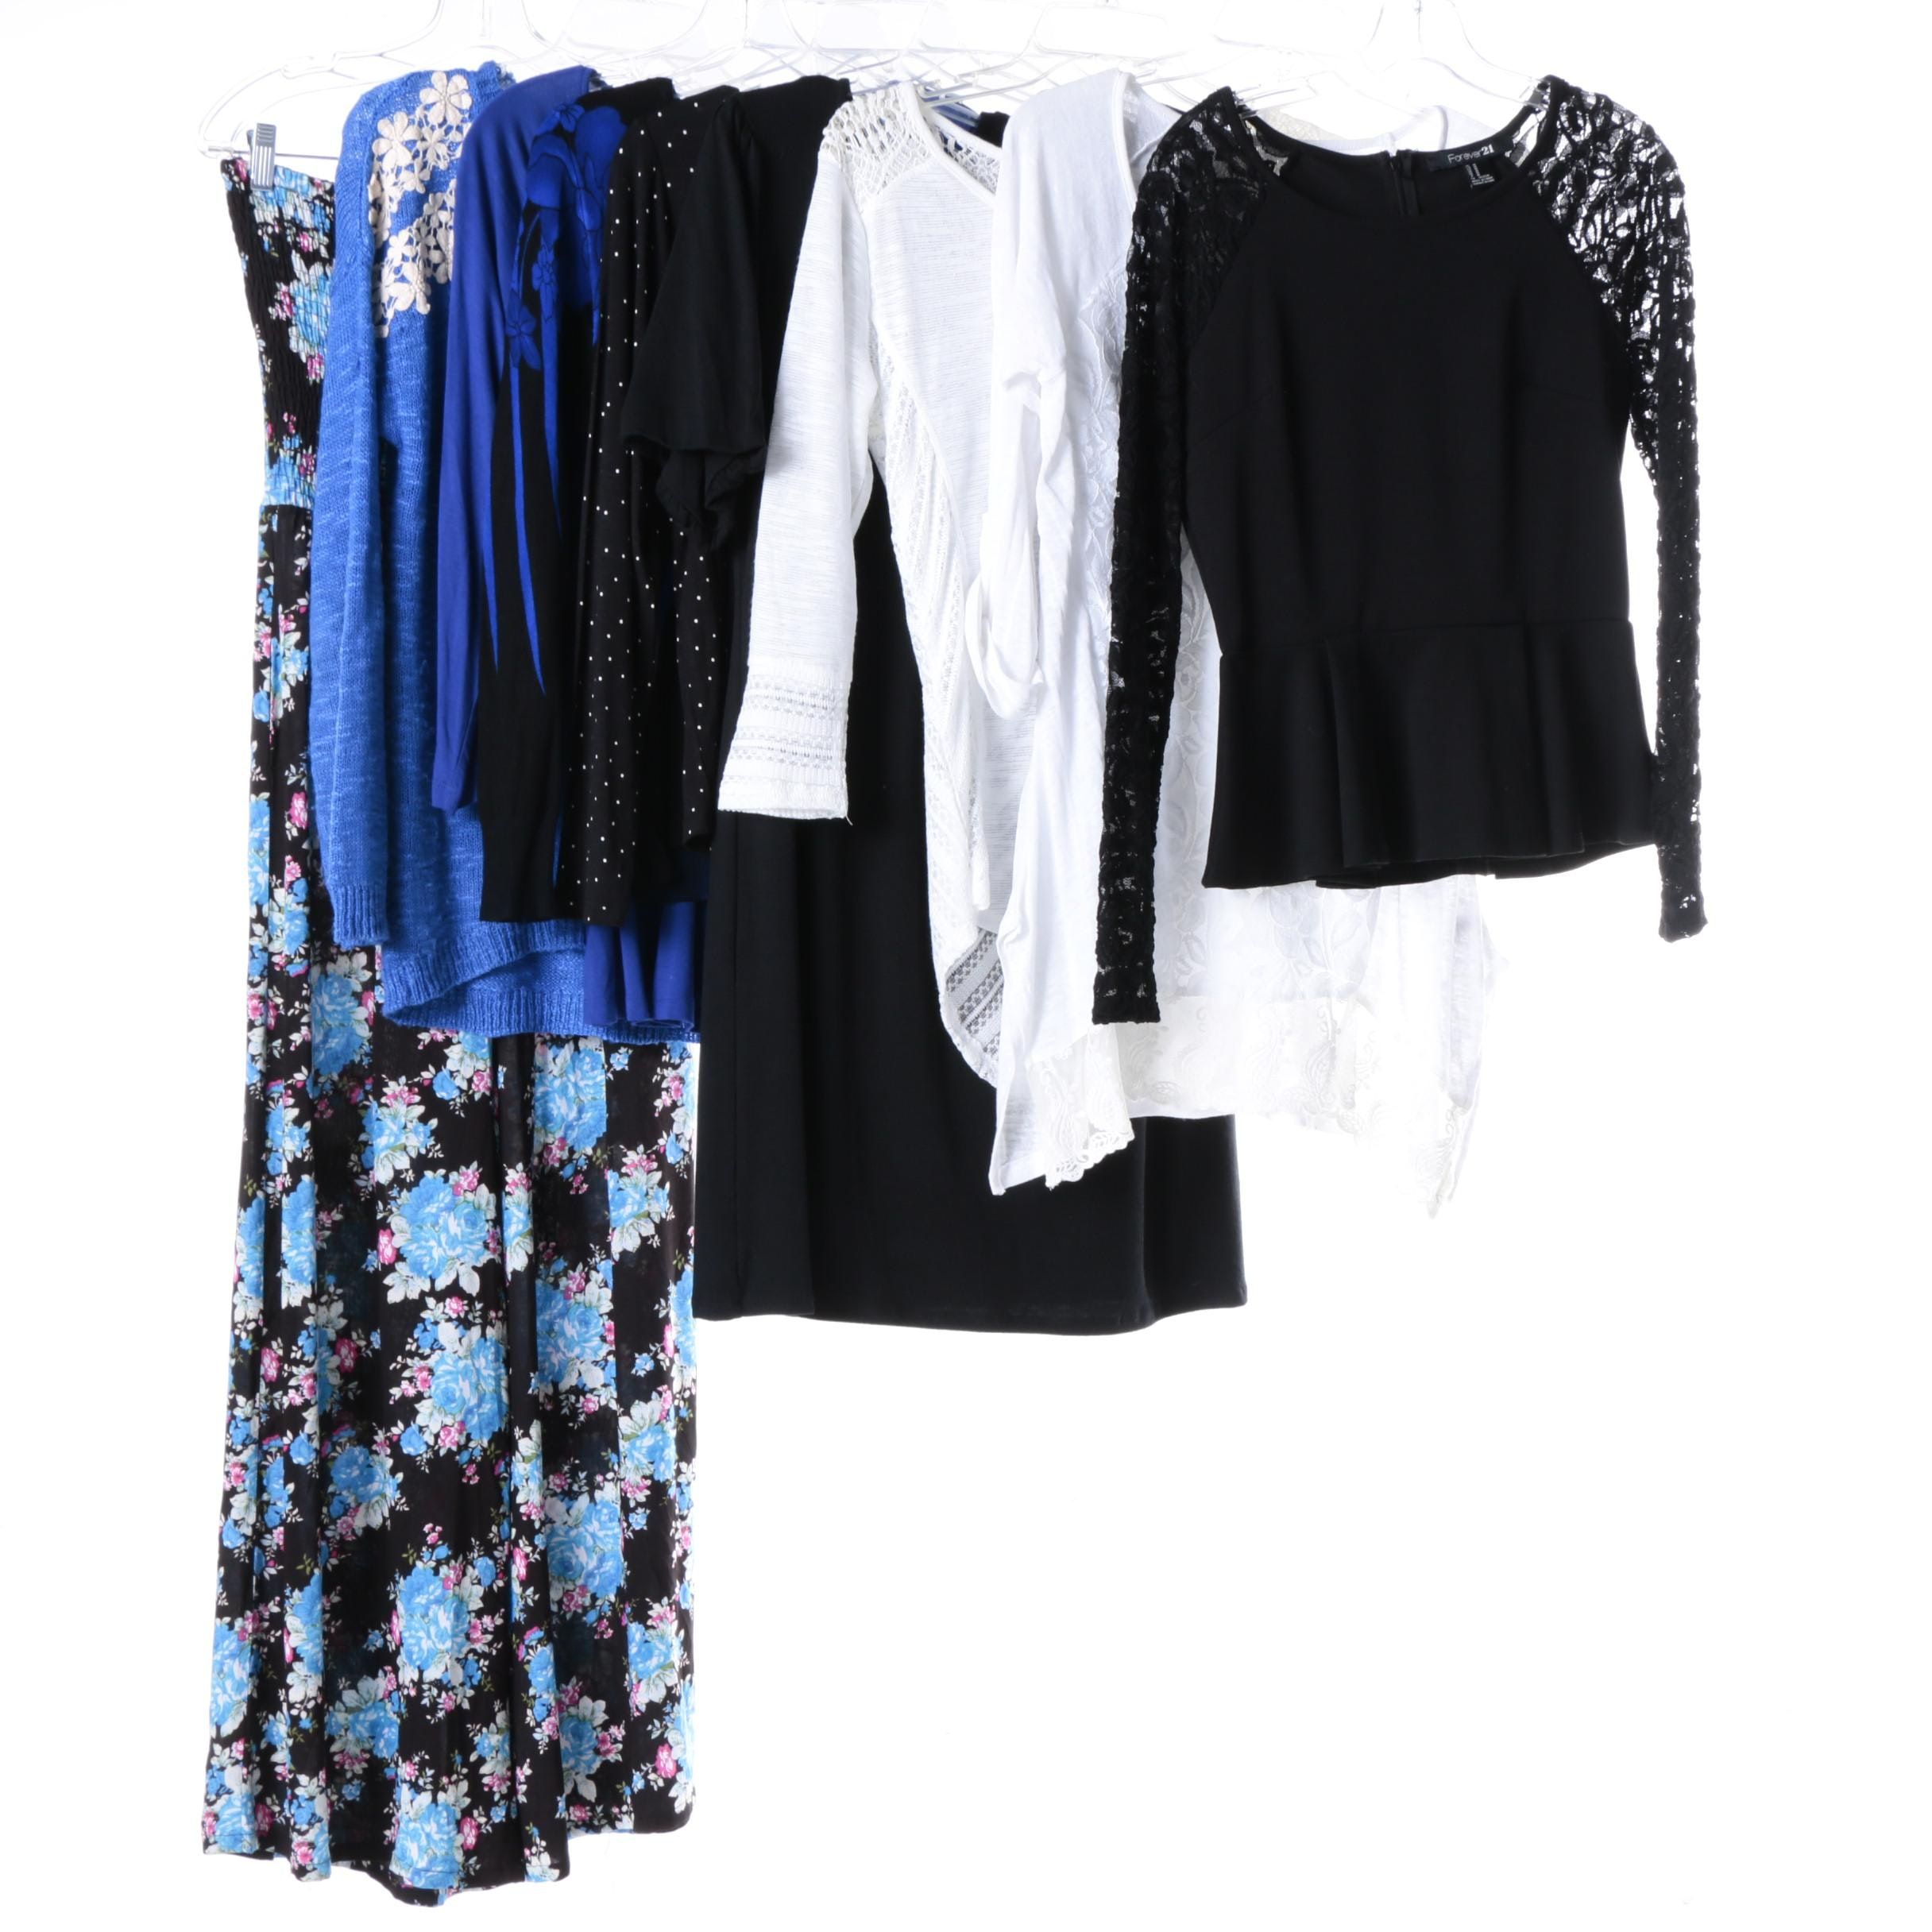 Women's Clothing Including Bongo and Forever 21